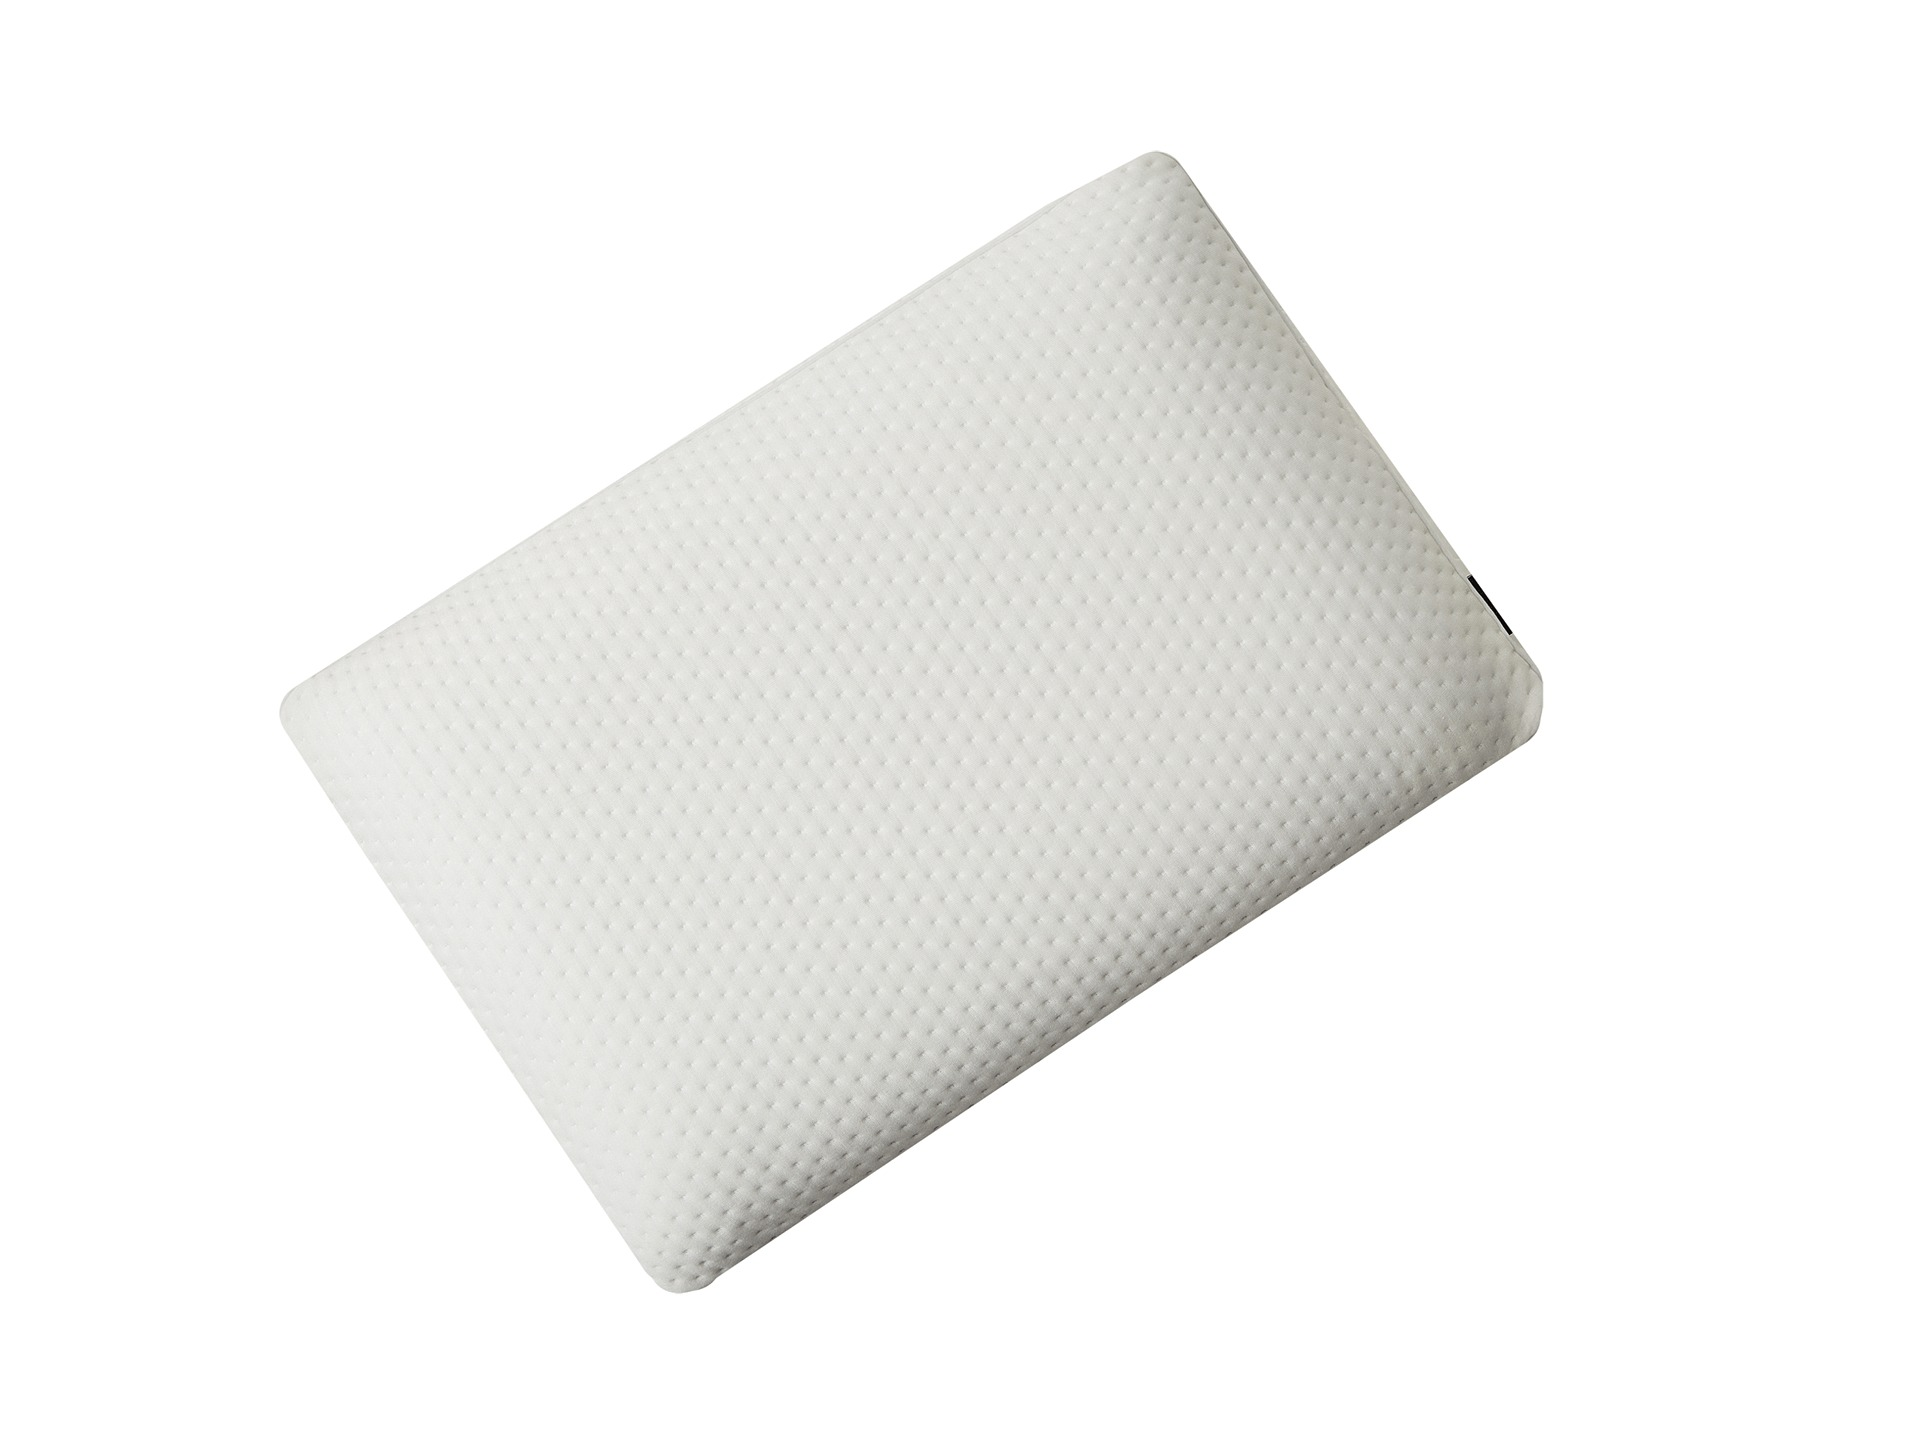 Soft Tex Luxury Extraordinaire Gusseted Memory Foam Bed